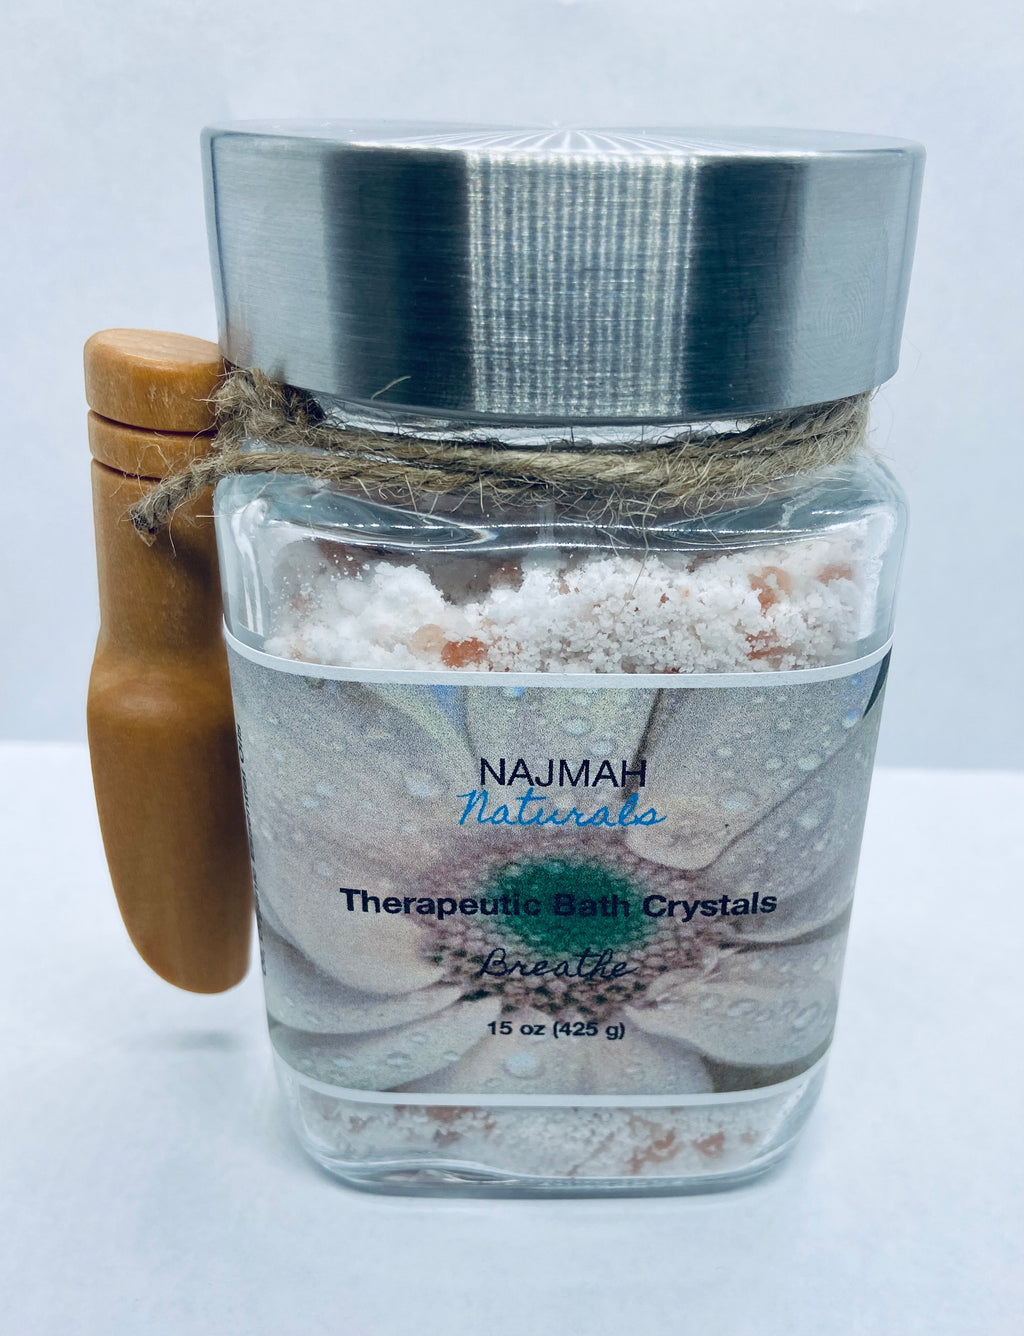 Our Breathe Therapeutic Bath Crystals are the ultimate relaxation, self care herbal salts with Epson Salt, Himalayan Pink Salt, Sodium Bicarbonate (Aluminum-Free), Organic Coconut Oil and Organic Essential Oils. Smells like peppermint and it's a customer favorite!